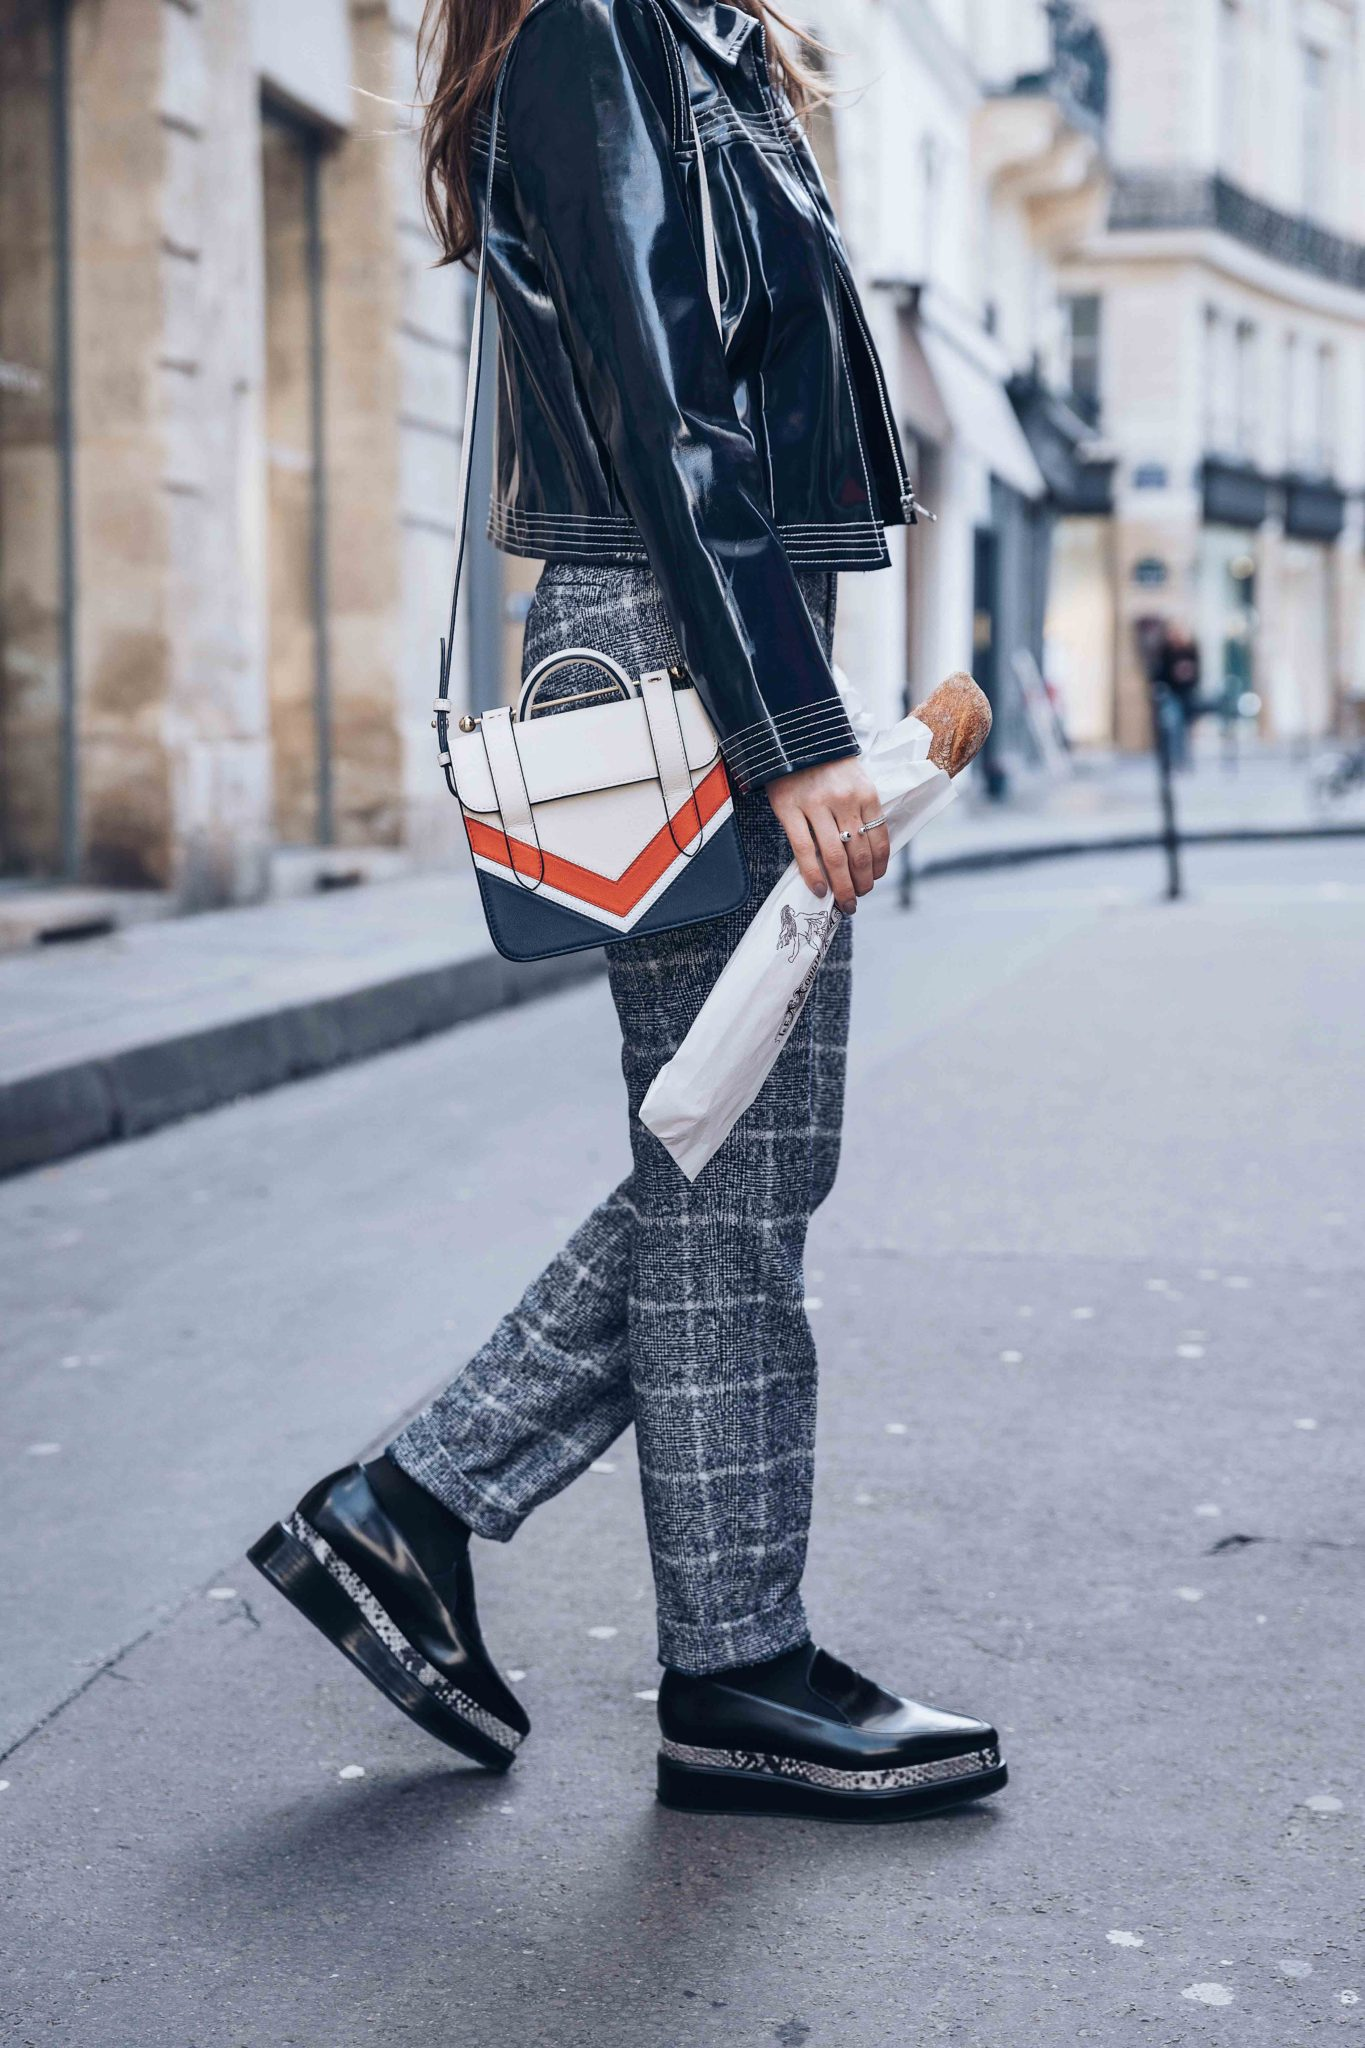 seven all around coupon code JULIA20 - Parisian style by Julia Comil French Fashion Blogger Wearing Seven All Around Platform Loafers - Strathberry Bag - Suistudio check pants - Ganni Patent cropped jacket - Save to read more about Seven all around review on Houseofcomil.com